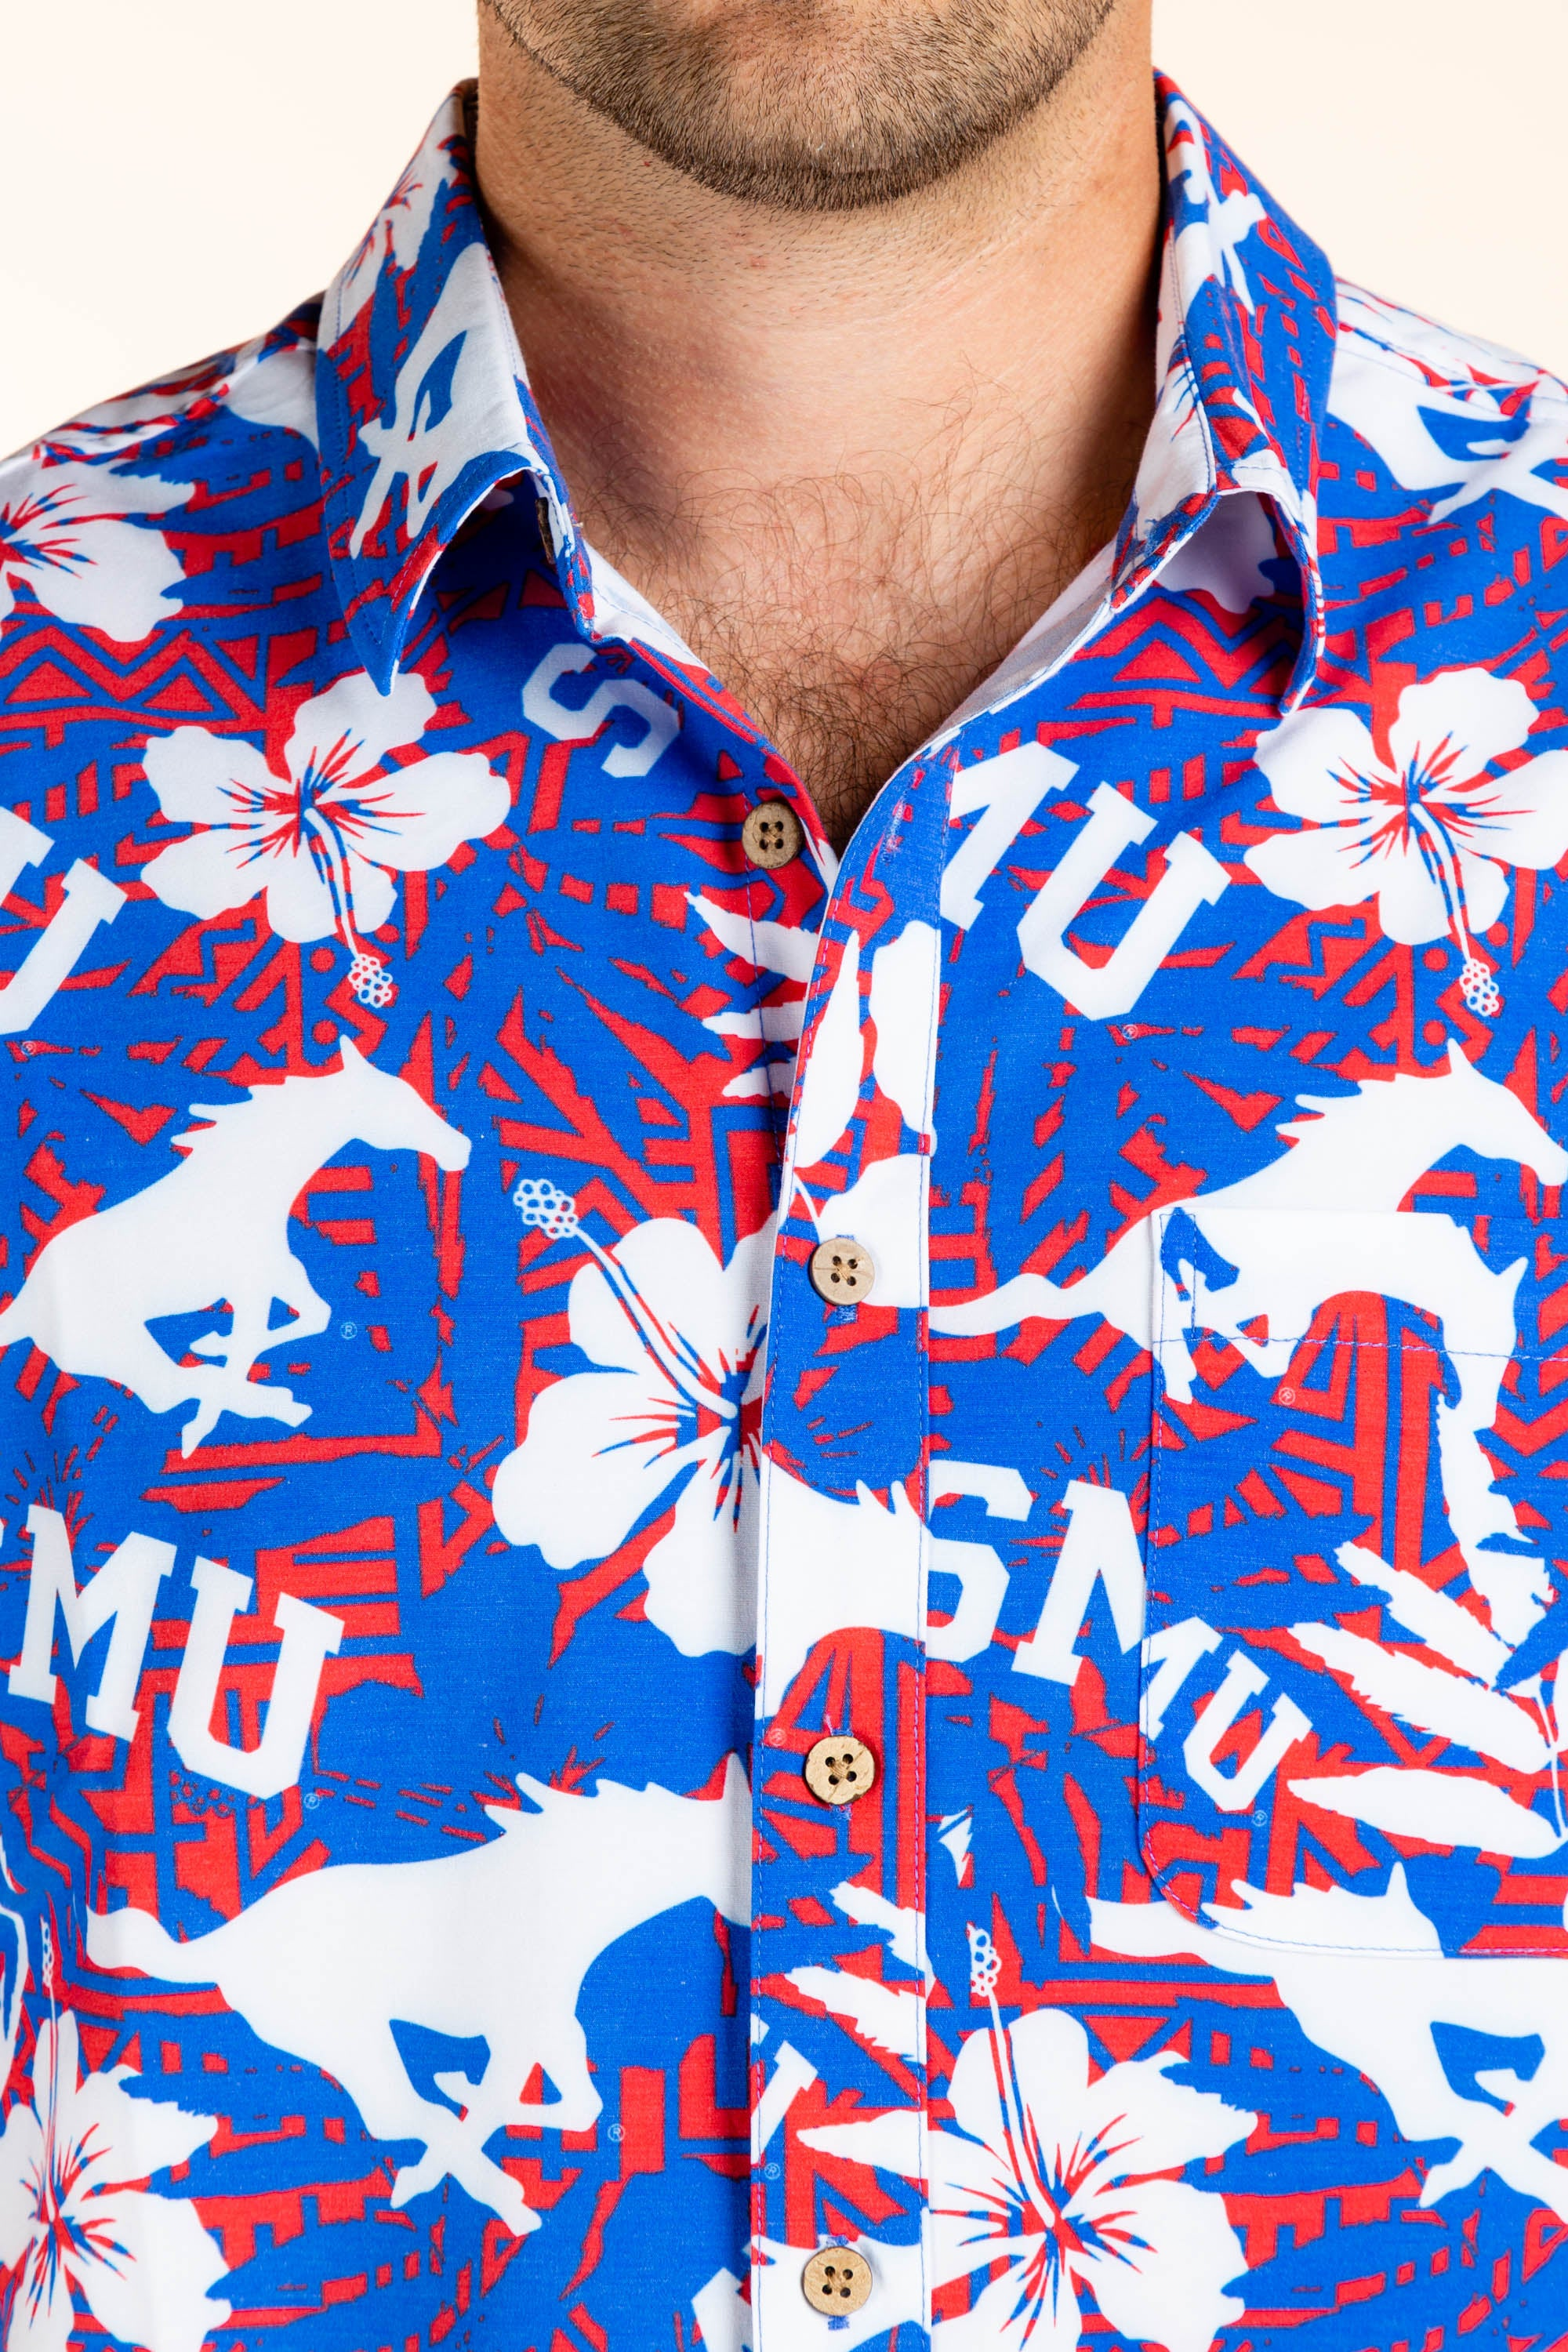 SMU Peruna Hawaiian Tailgating Shirt